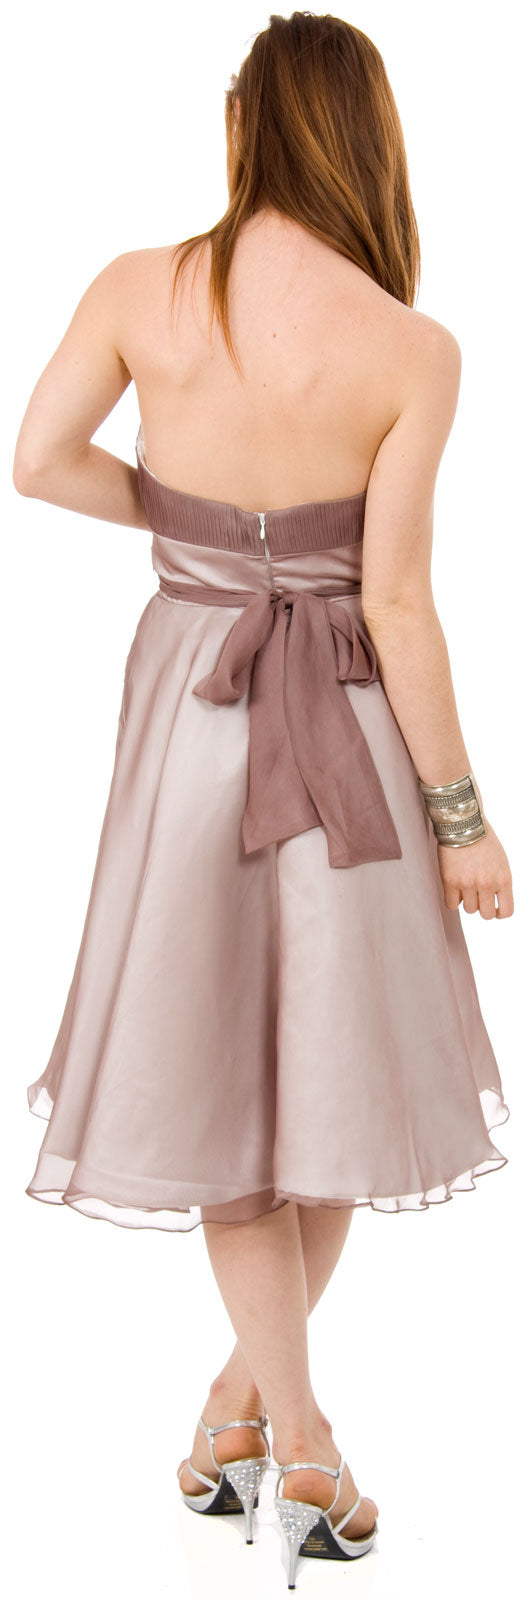 Image of Strapless Bridesmaid Dress With Detachable Sash back in Mocha